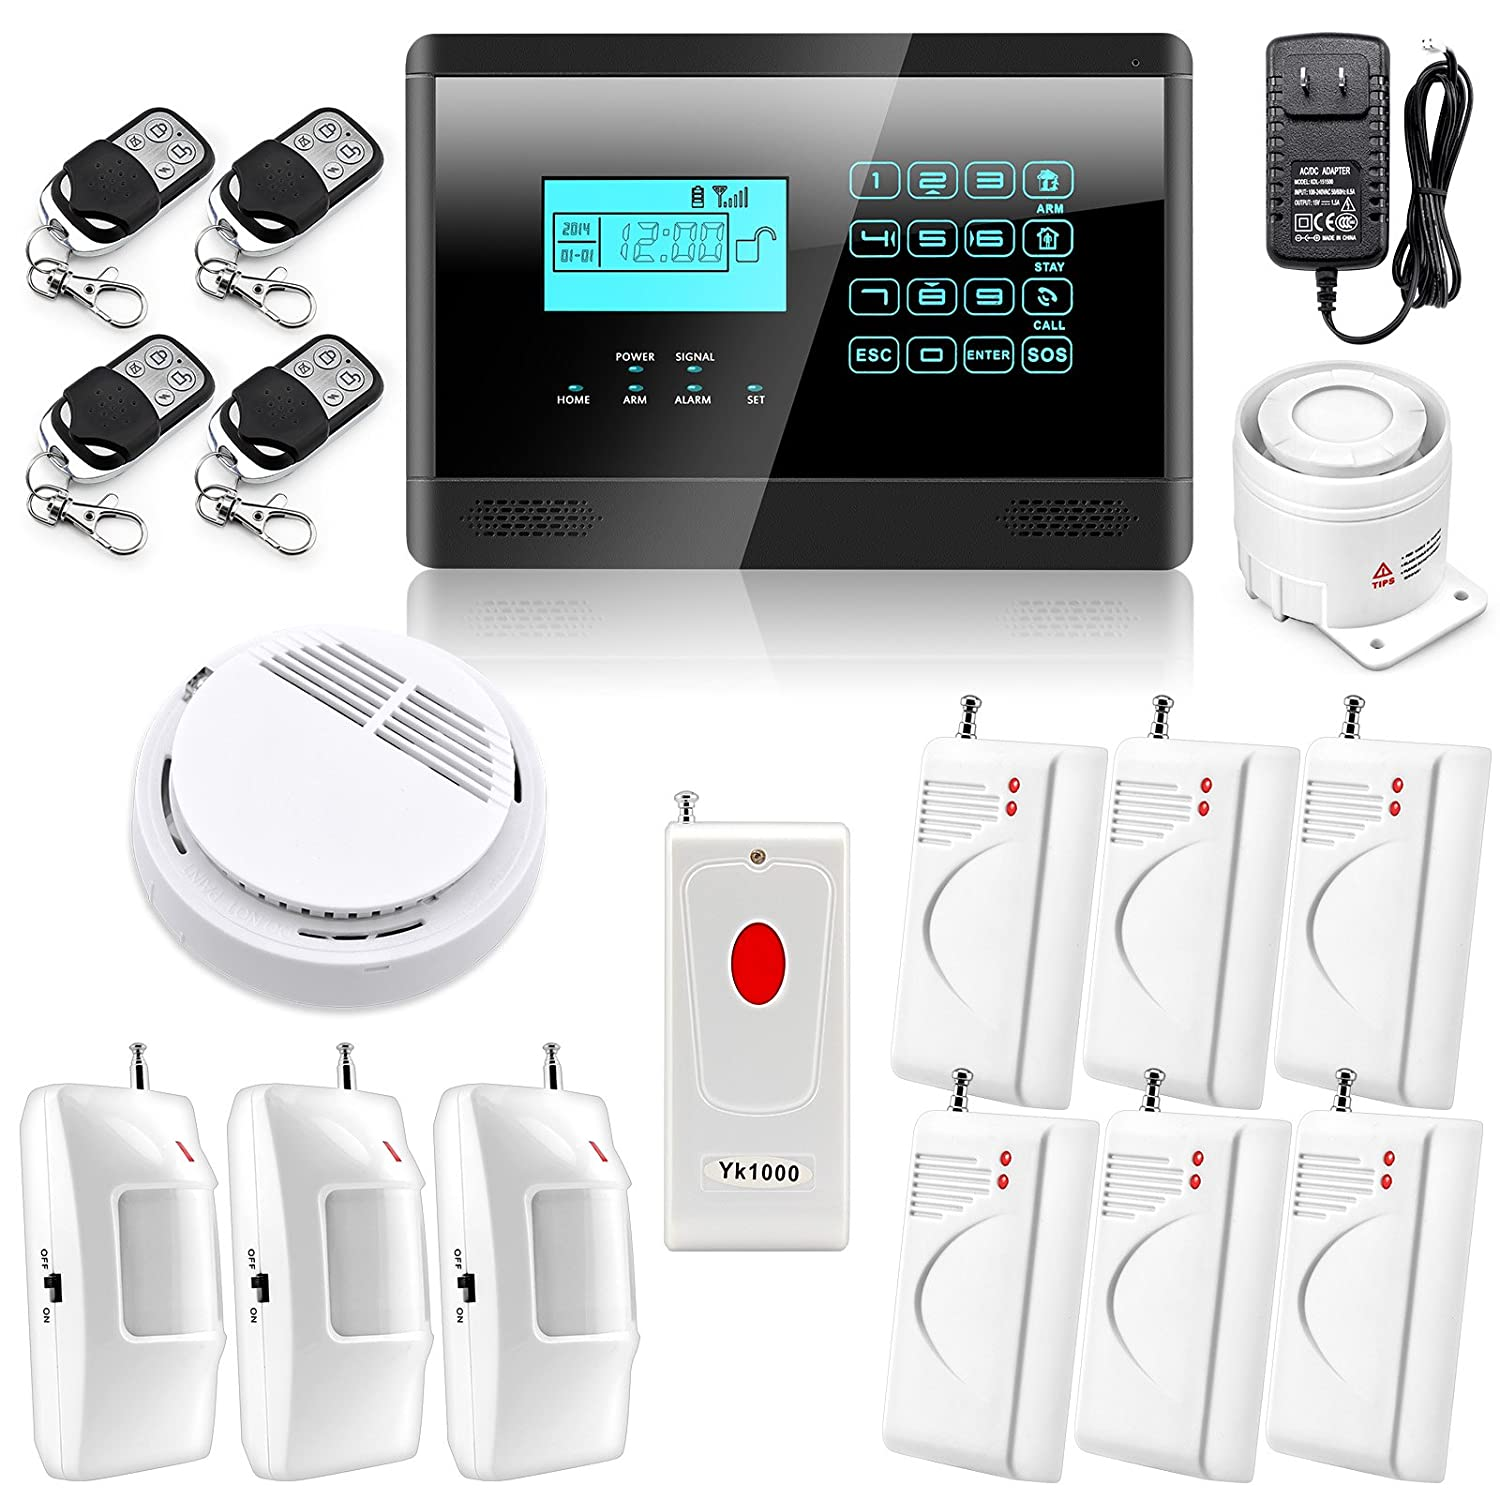 The 50 best smart home security systems top home automation wolf guard wireless autodial smart home house security burglar alarm system solutioingenieria Image collections